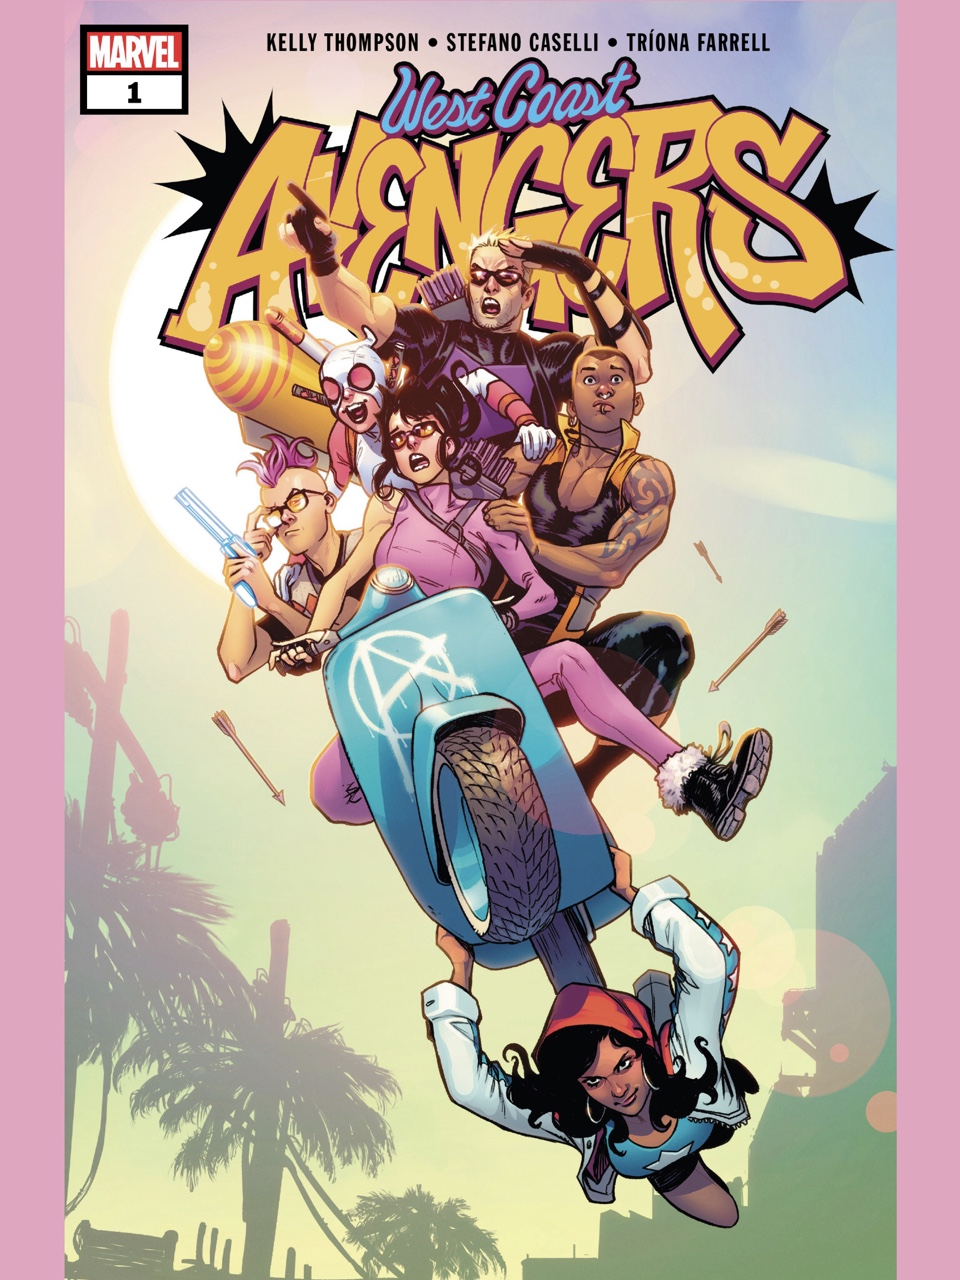 West Coast Avengers (2018) #1 cover by Stefano Caselli and Nolan Woodard